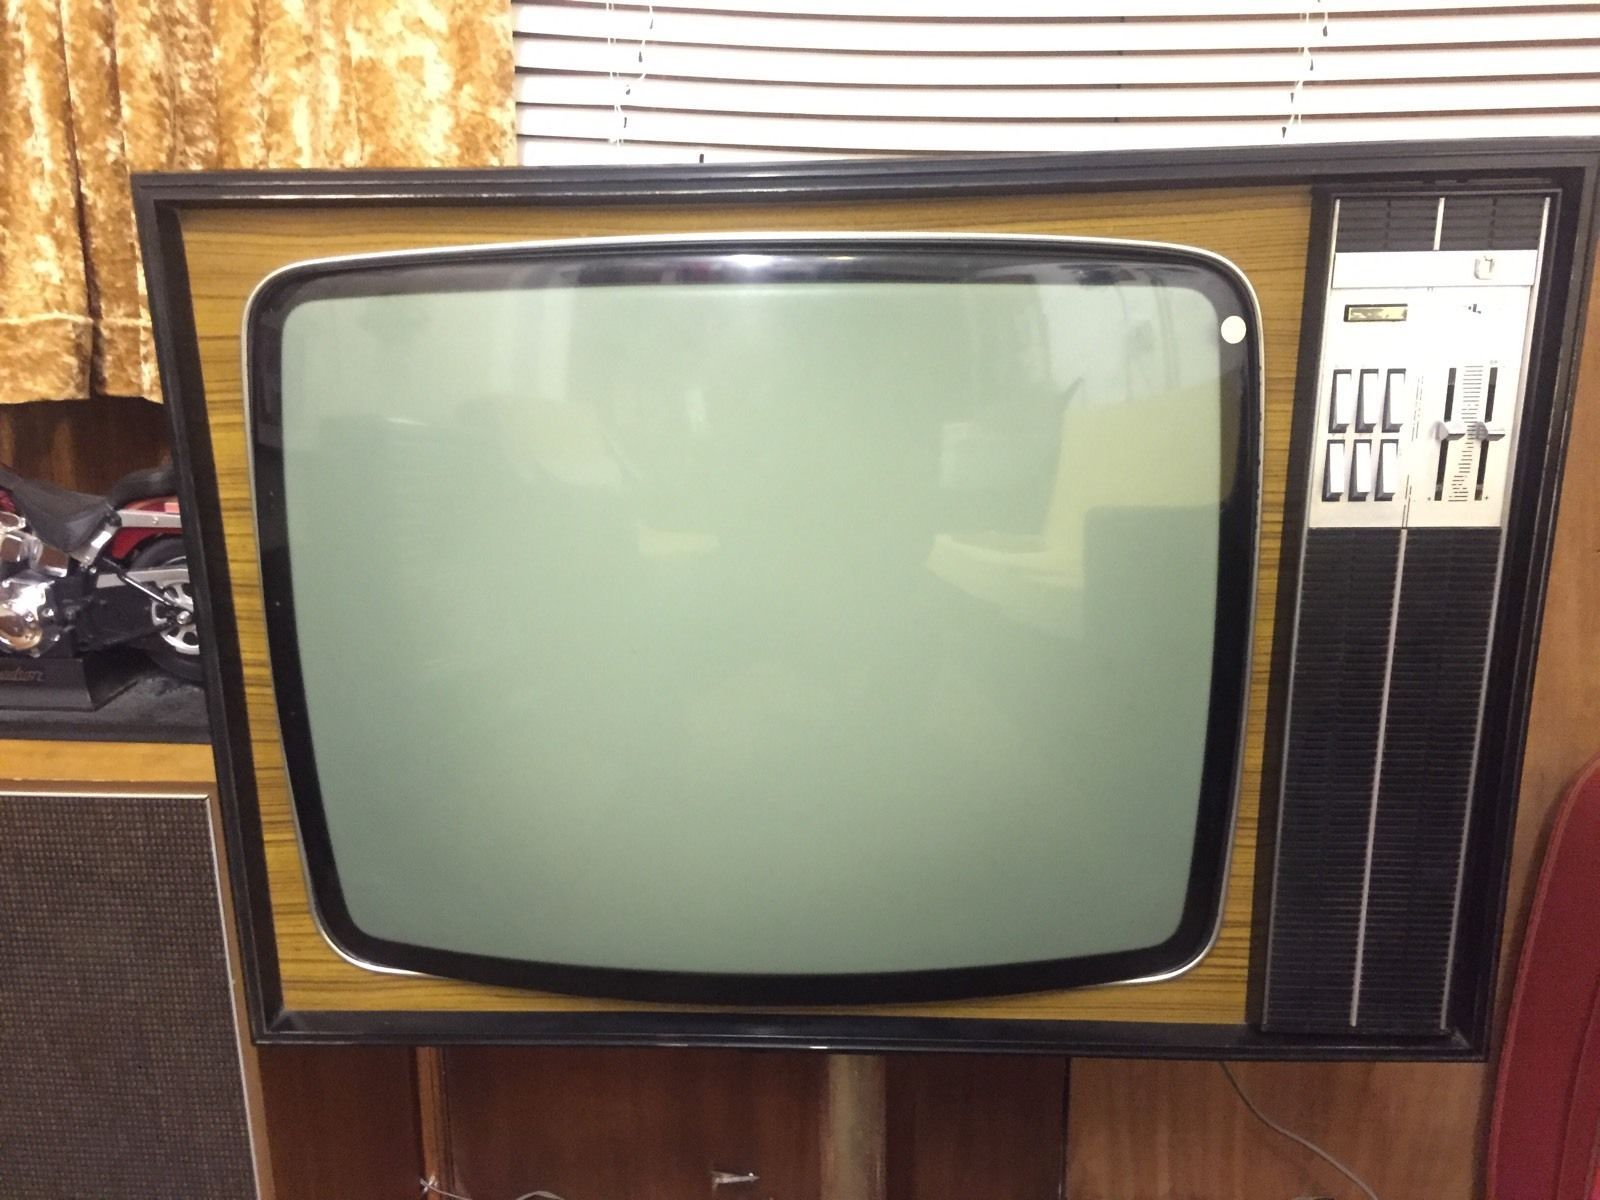 VINTAGE 1970S ULTRA BLACK AND WHITE TELEVISION 1 | TVs in